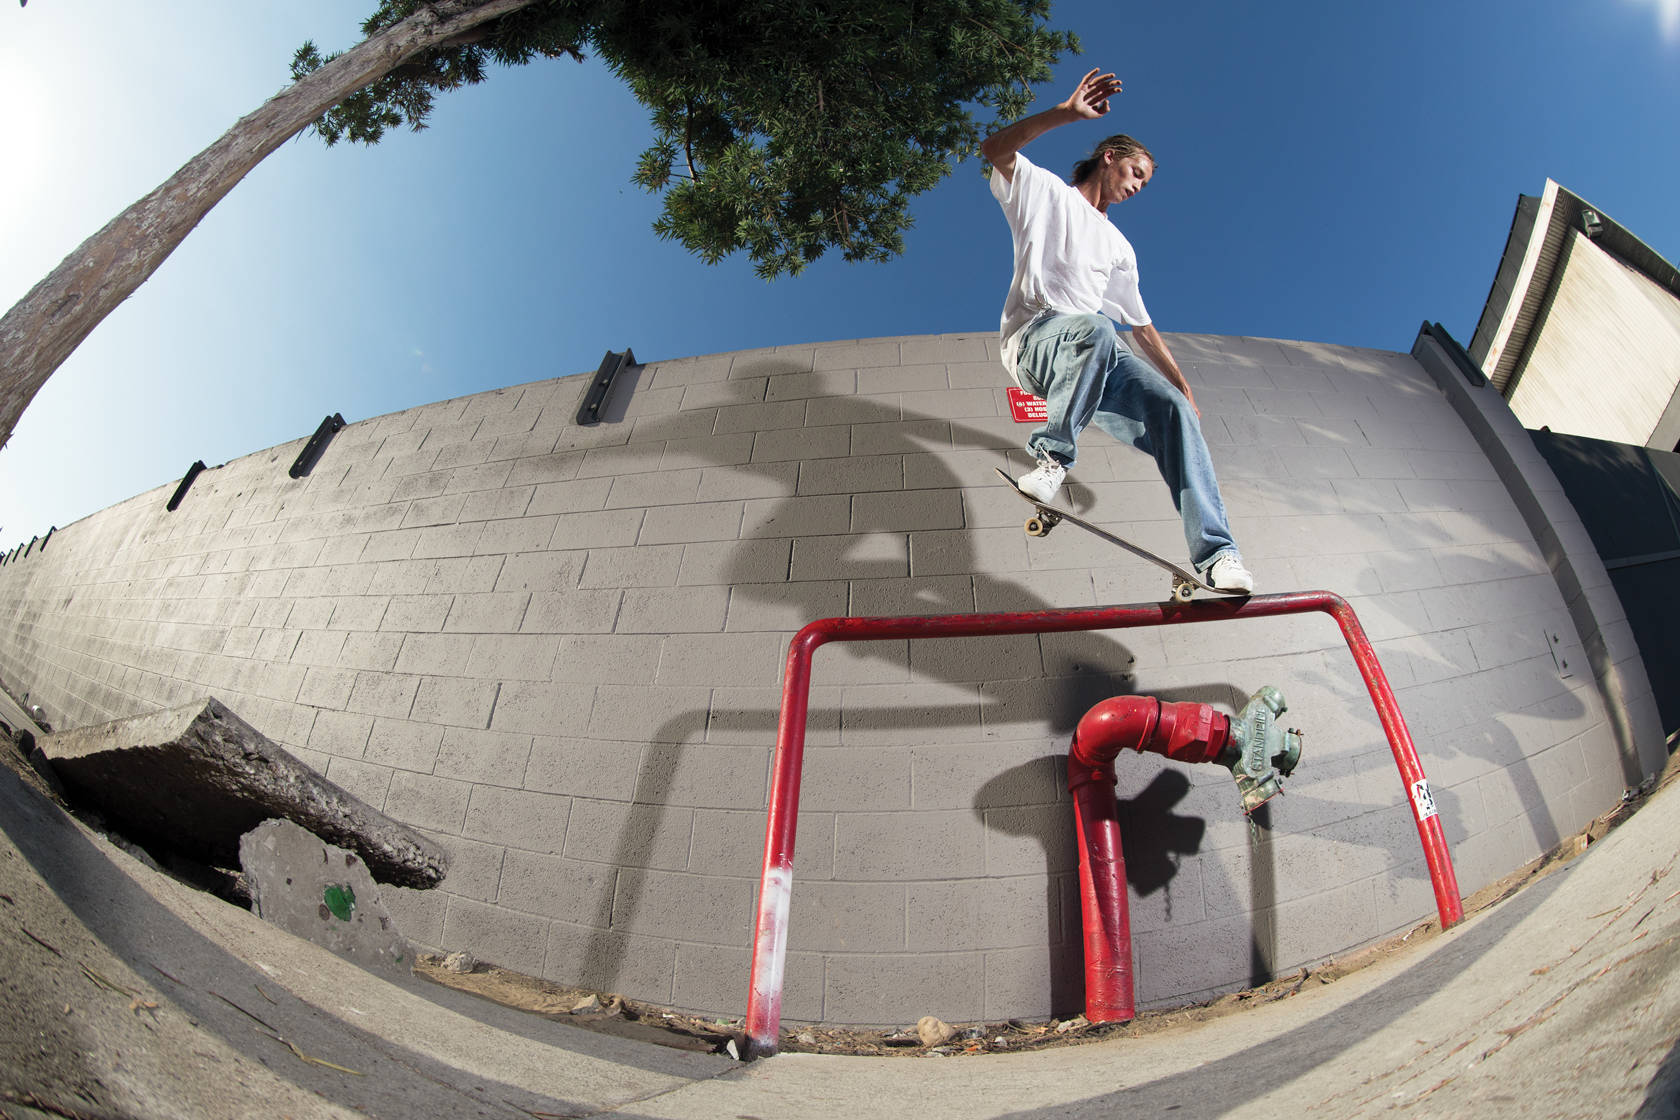 THE NEXT NEW WAVE -- Justin Drysen - Berrics Magazine